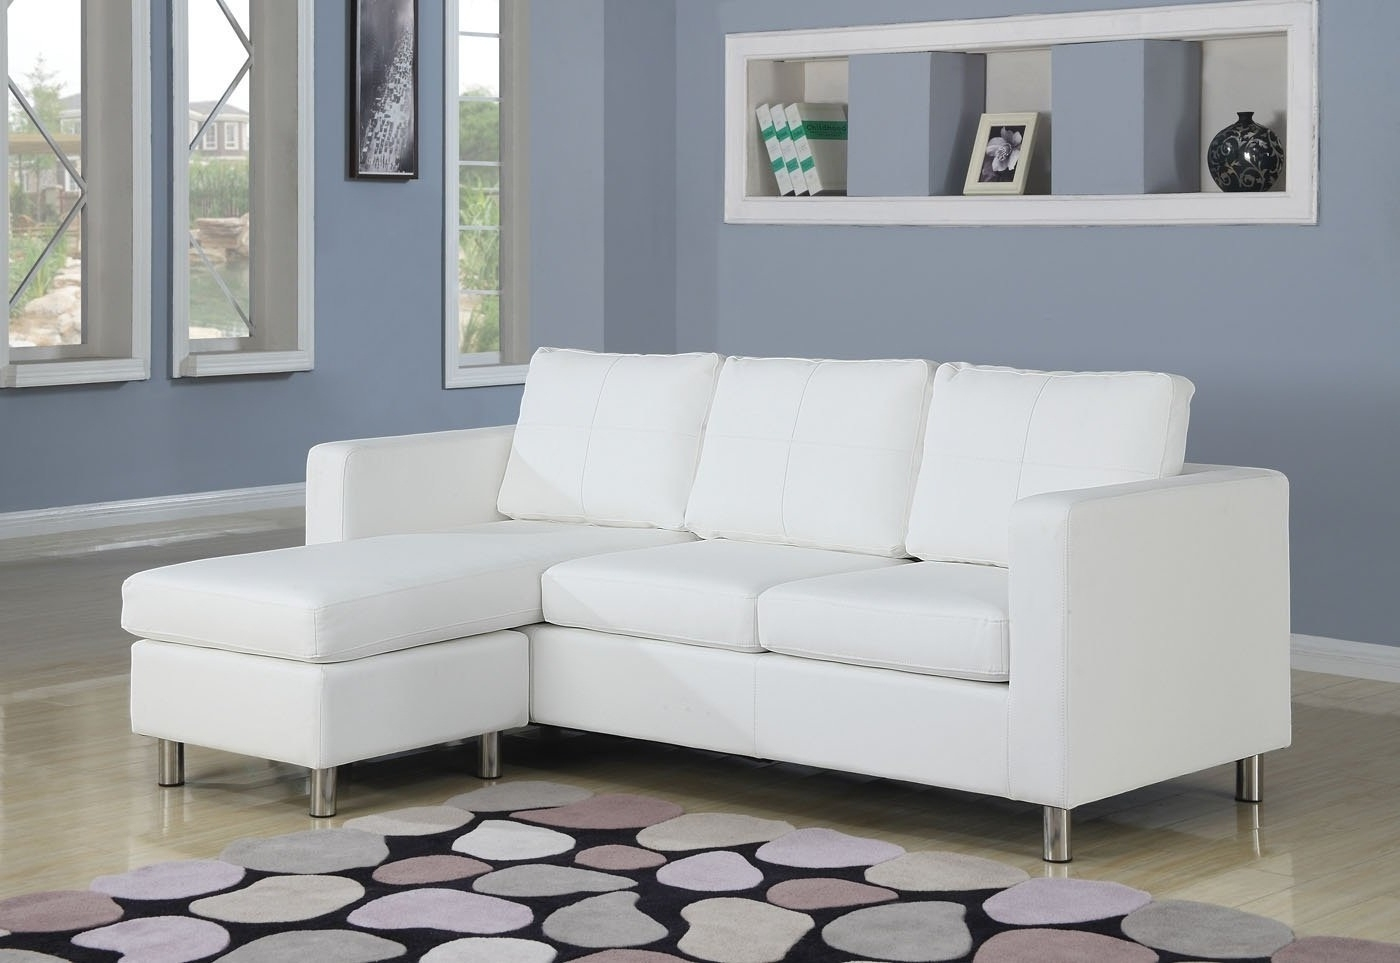 Well Liked Small Chaises For L White Leather Sectional Sofa With Chaise And Back Also Arms On (View 9 of 15)